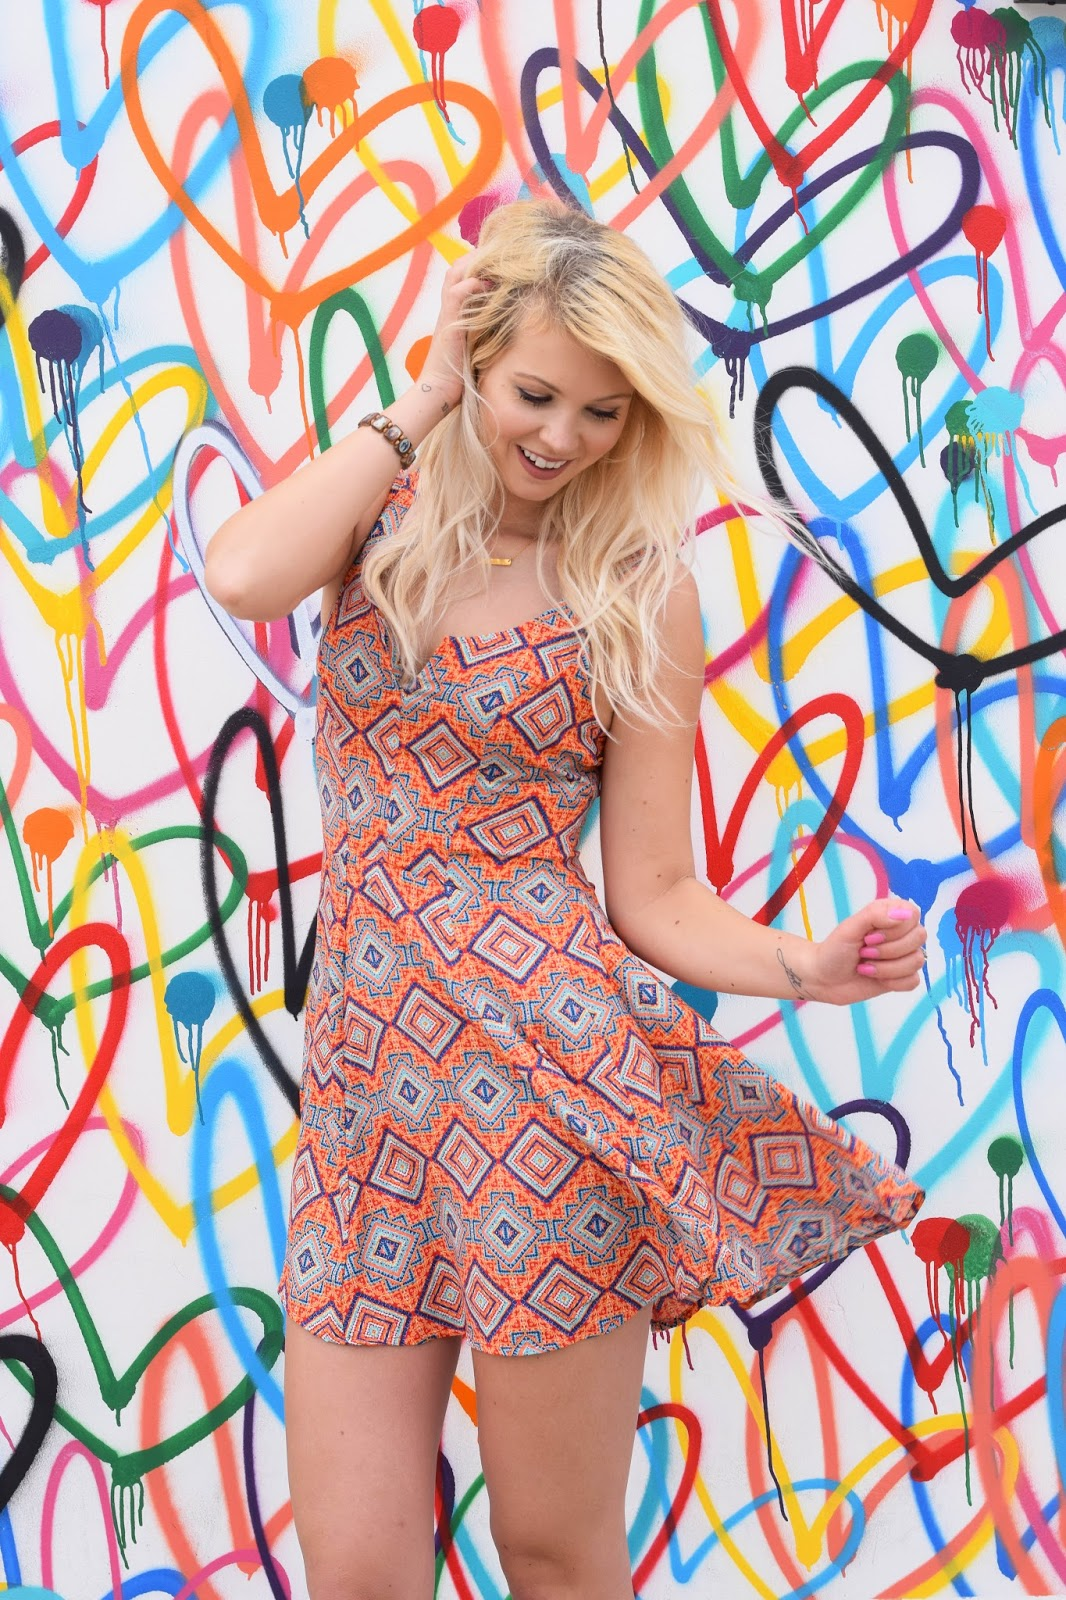 organe dress, bebop clothing, bebop dress, orange, venice, heart wall venice, denim, summer dress, bohemian dress